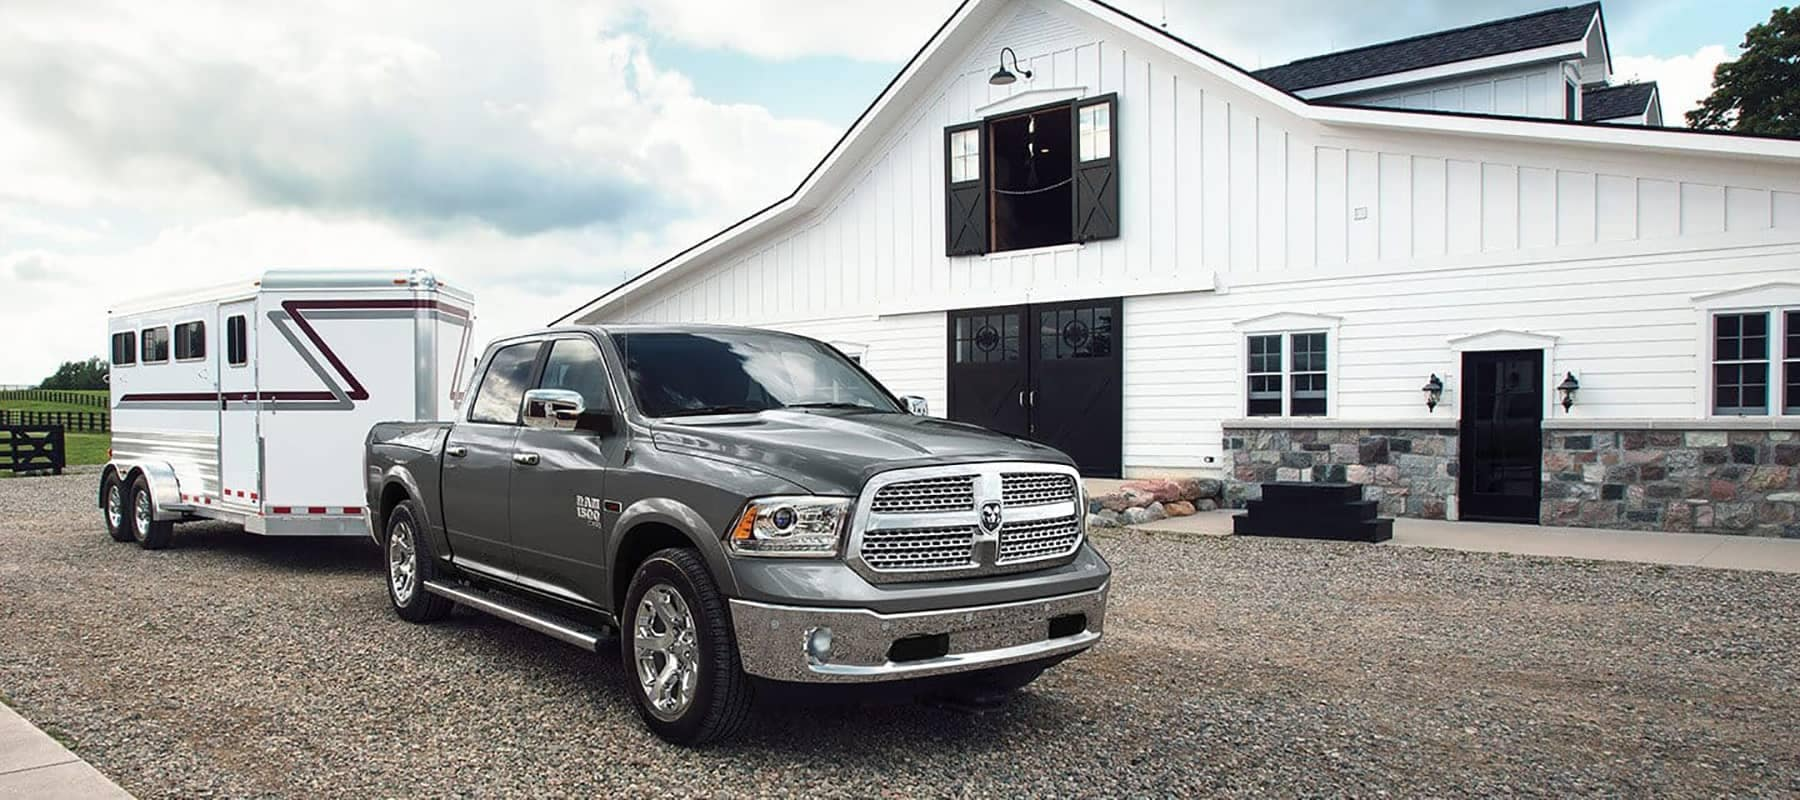 2019 Ram 1500 Classic Towing